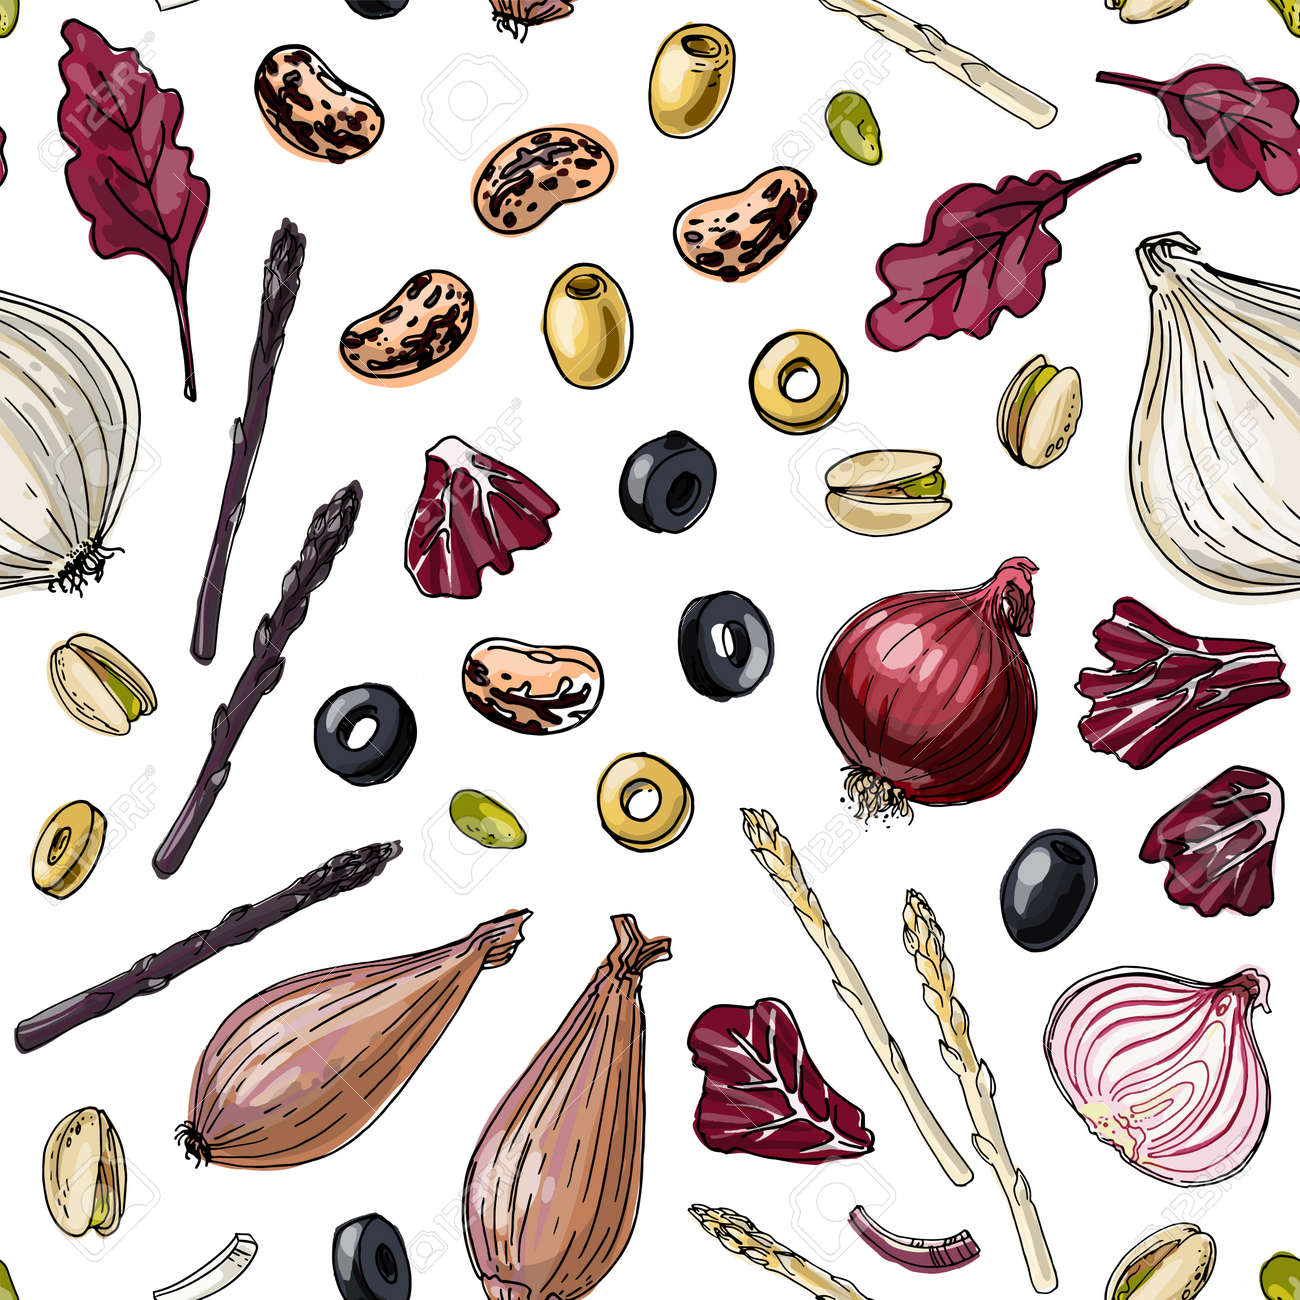 Seampless pattern vector color food. Vegetables, paprika, cucumbers, olives - 171951932